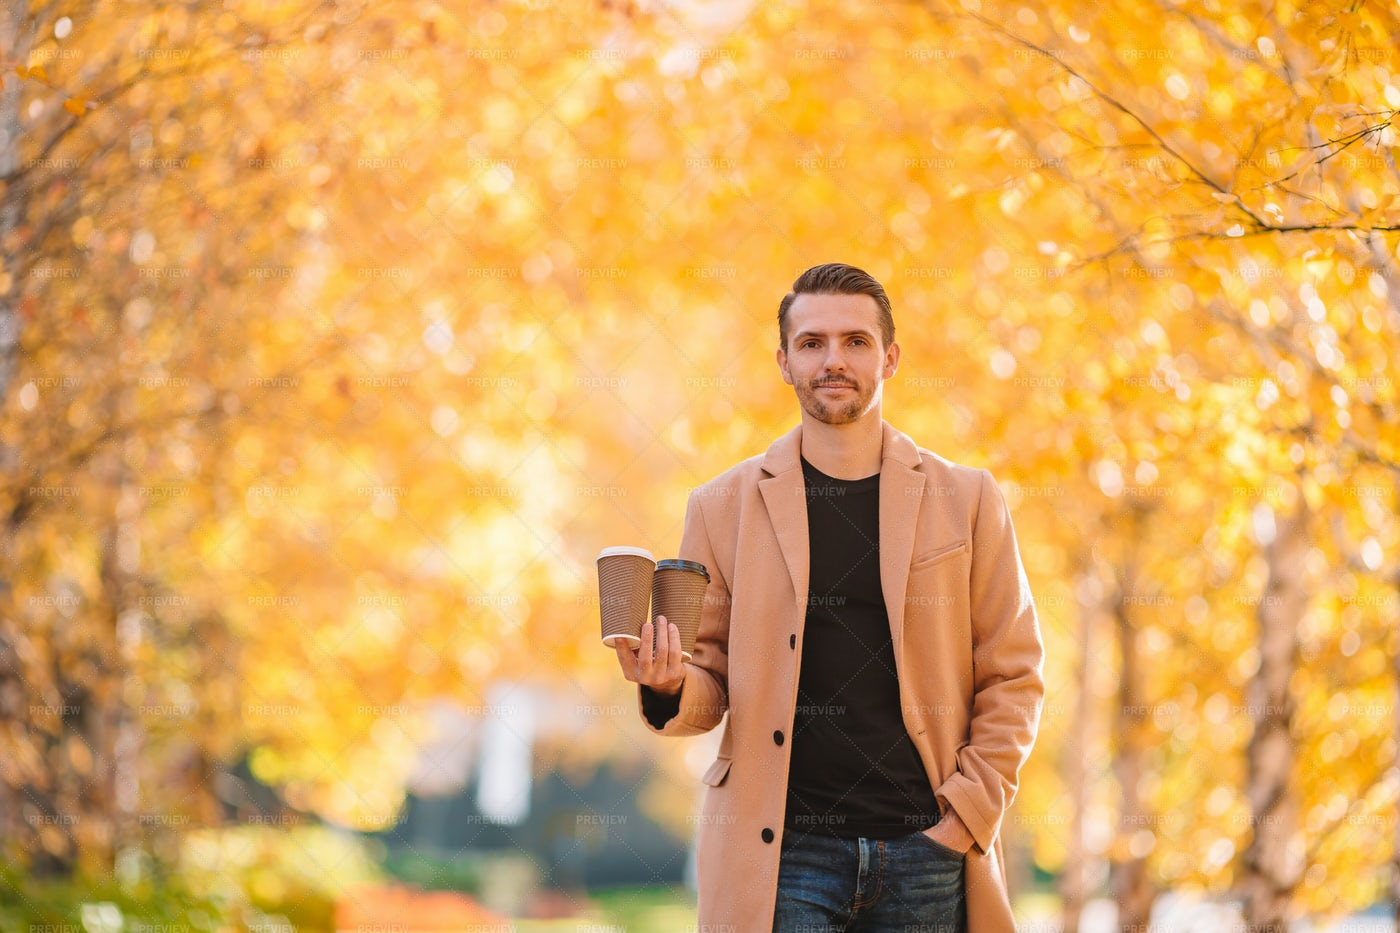 Holding Two Coffee Cups: Stock Photos